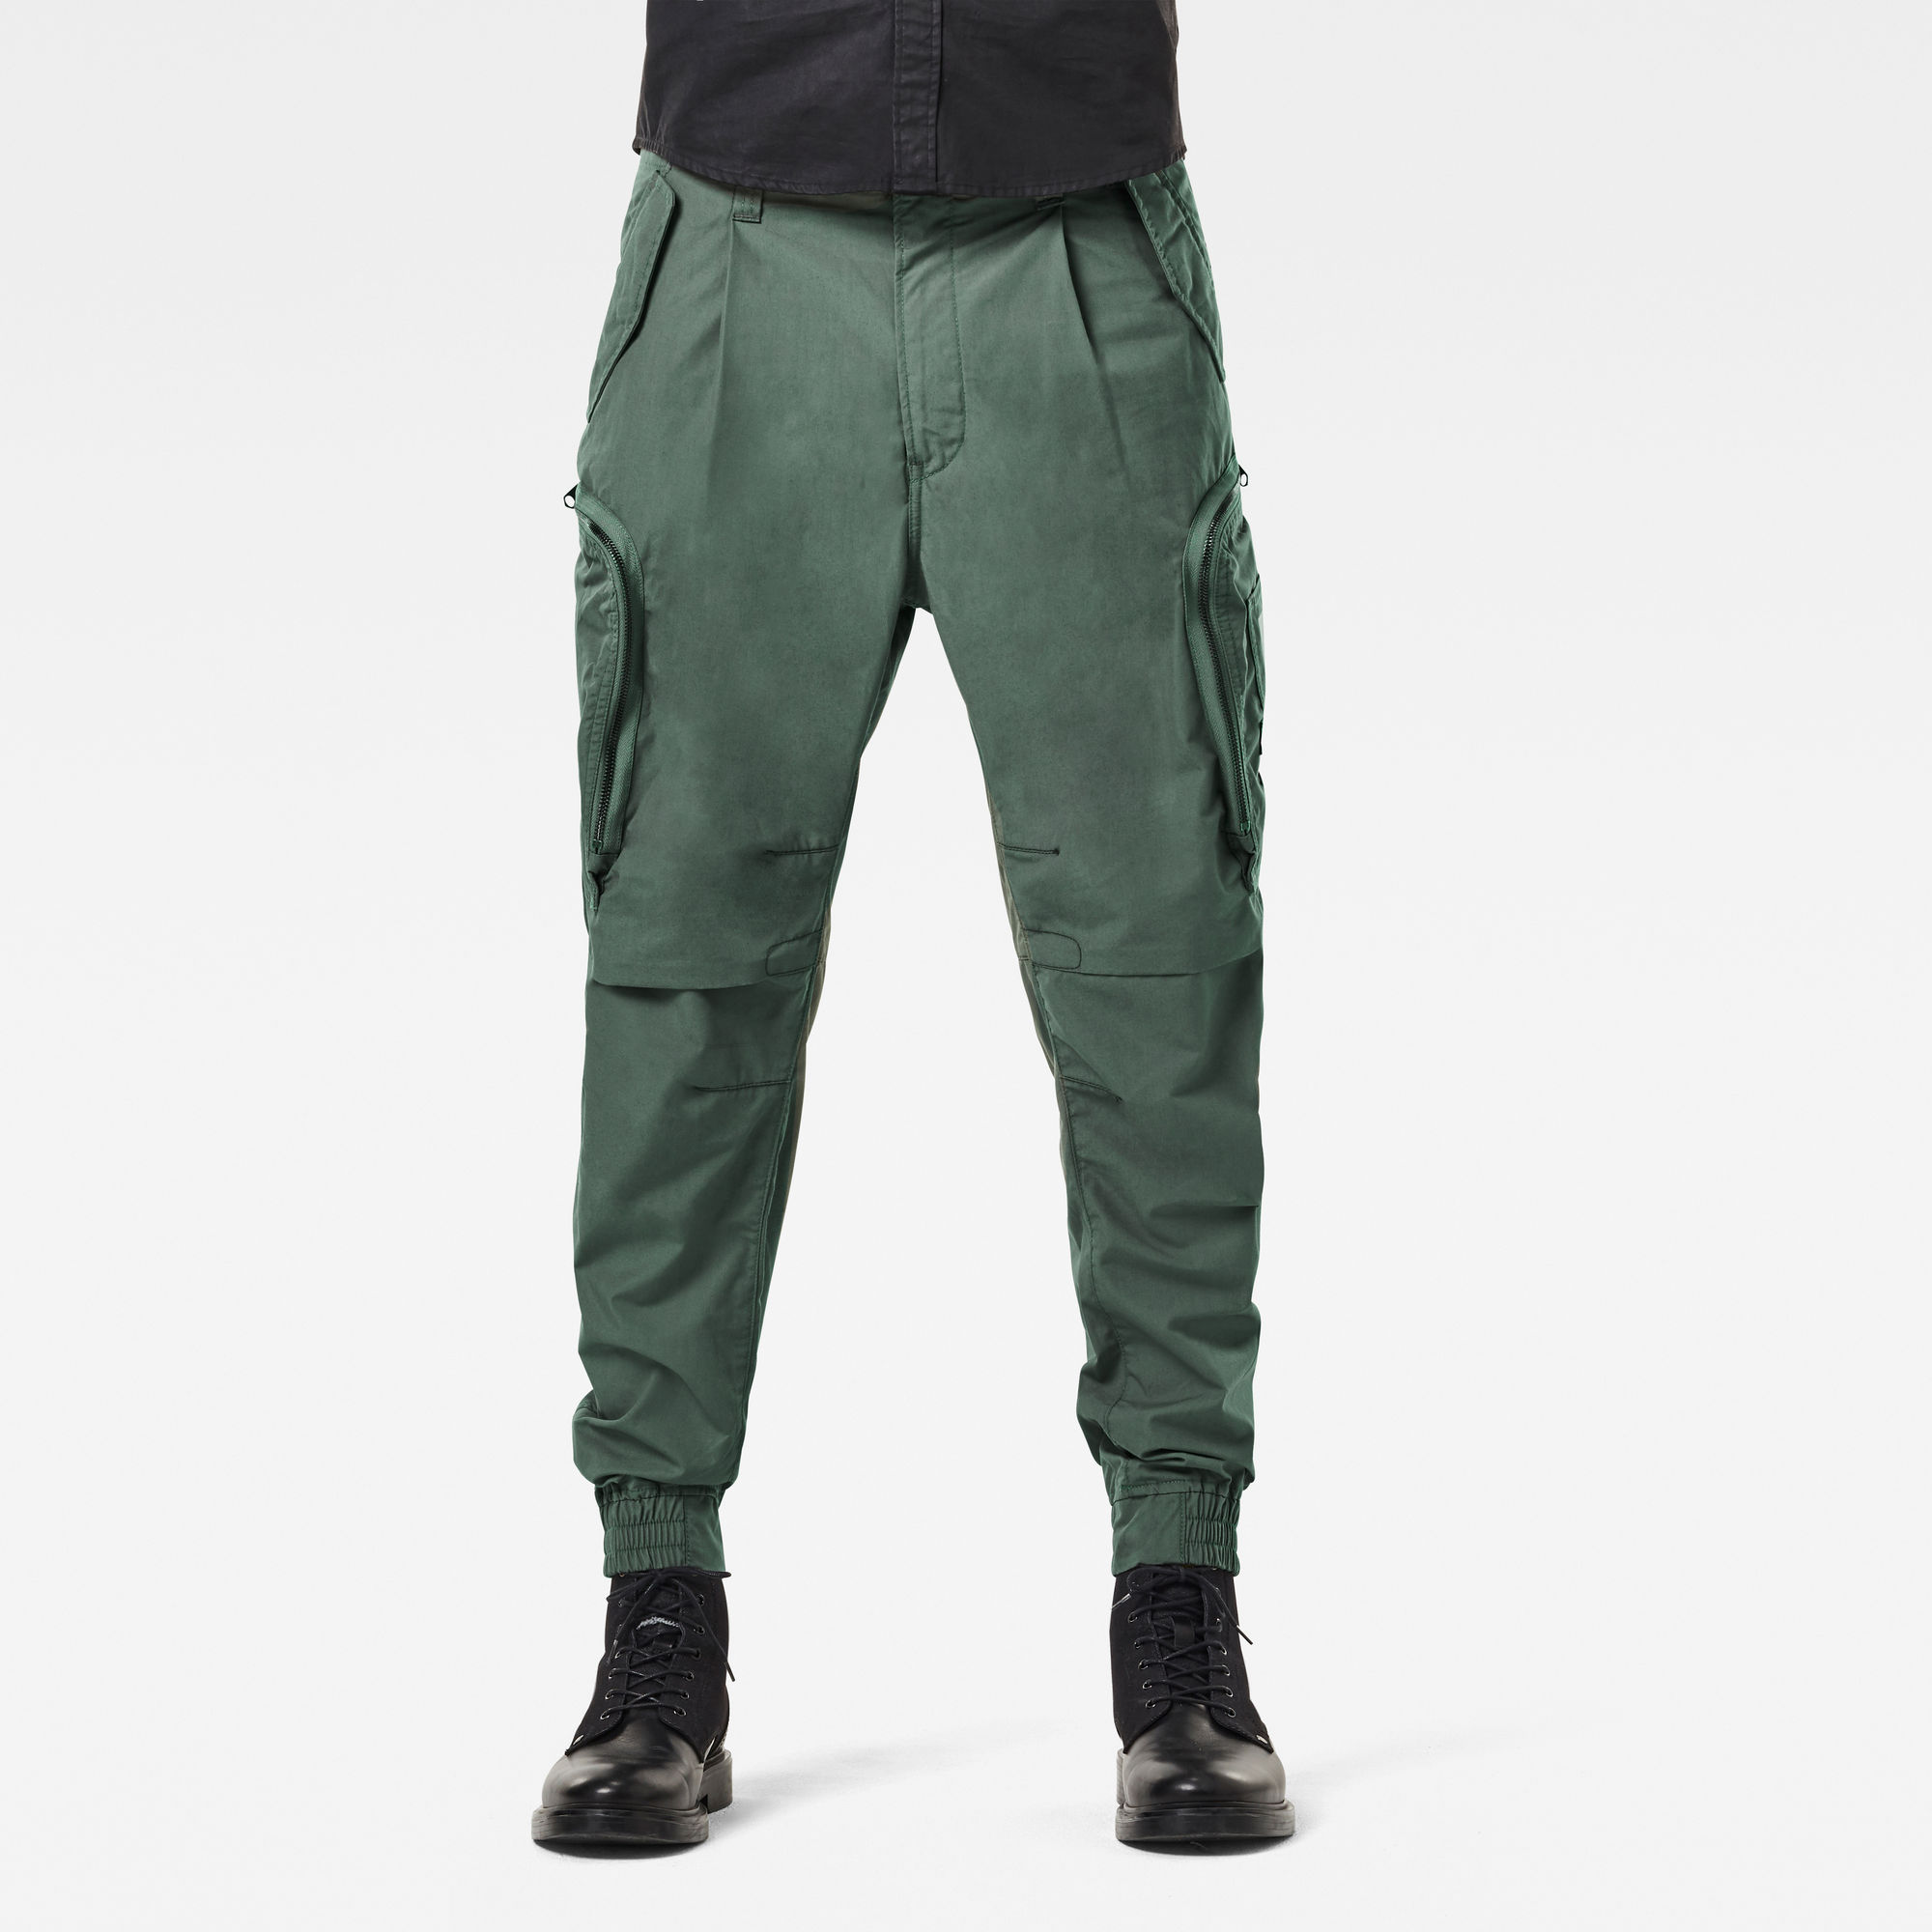 G-Star RAW Hombre Pantalones Flight Cargo Relaxed Tapered Cuffed Verde